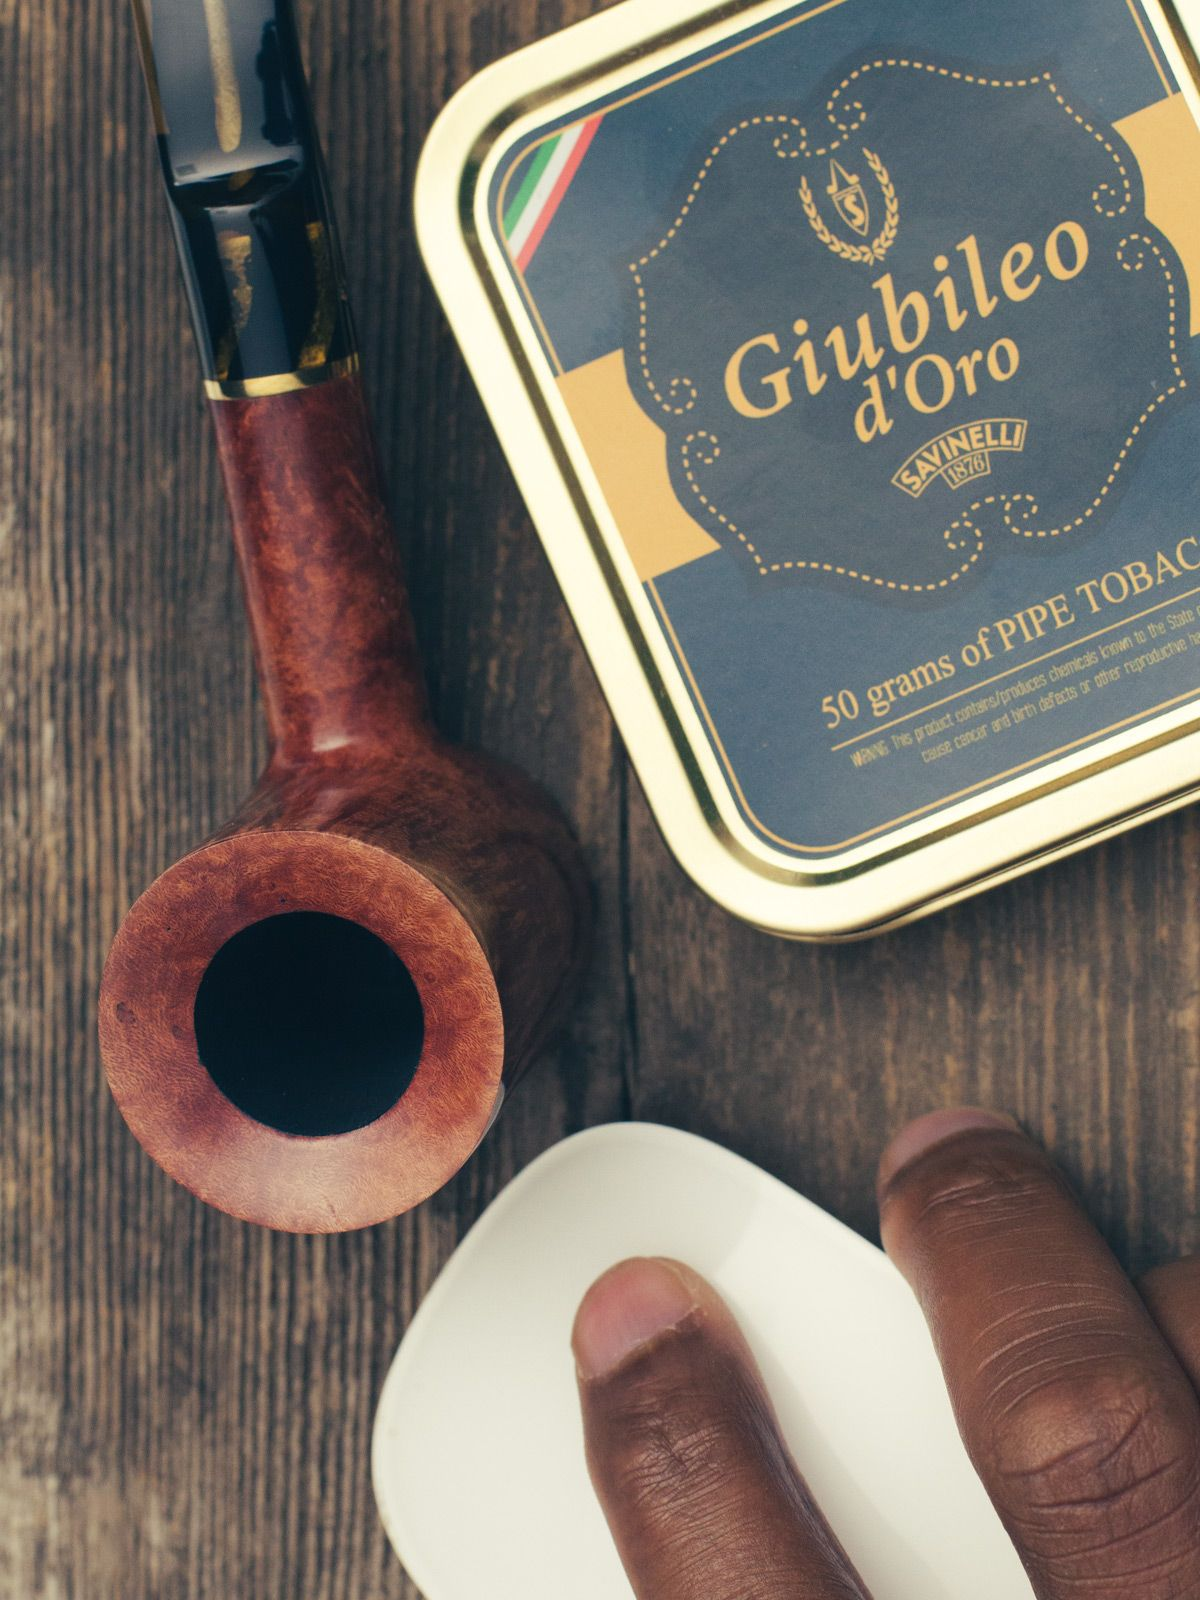 Cant decide between that new pipe and more tobacco? Weve got your back. For every new Savinelli well throw in a Savinelli tin of your choice. http://smokingpip.es/2dsxAgq